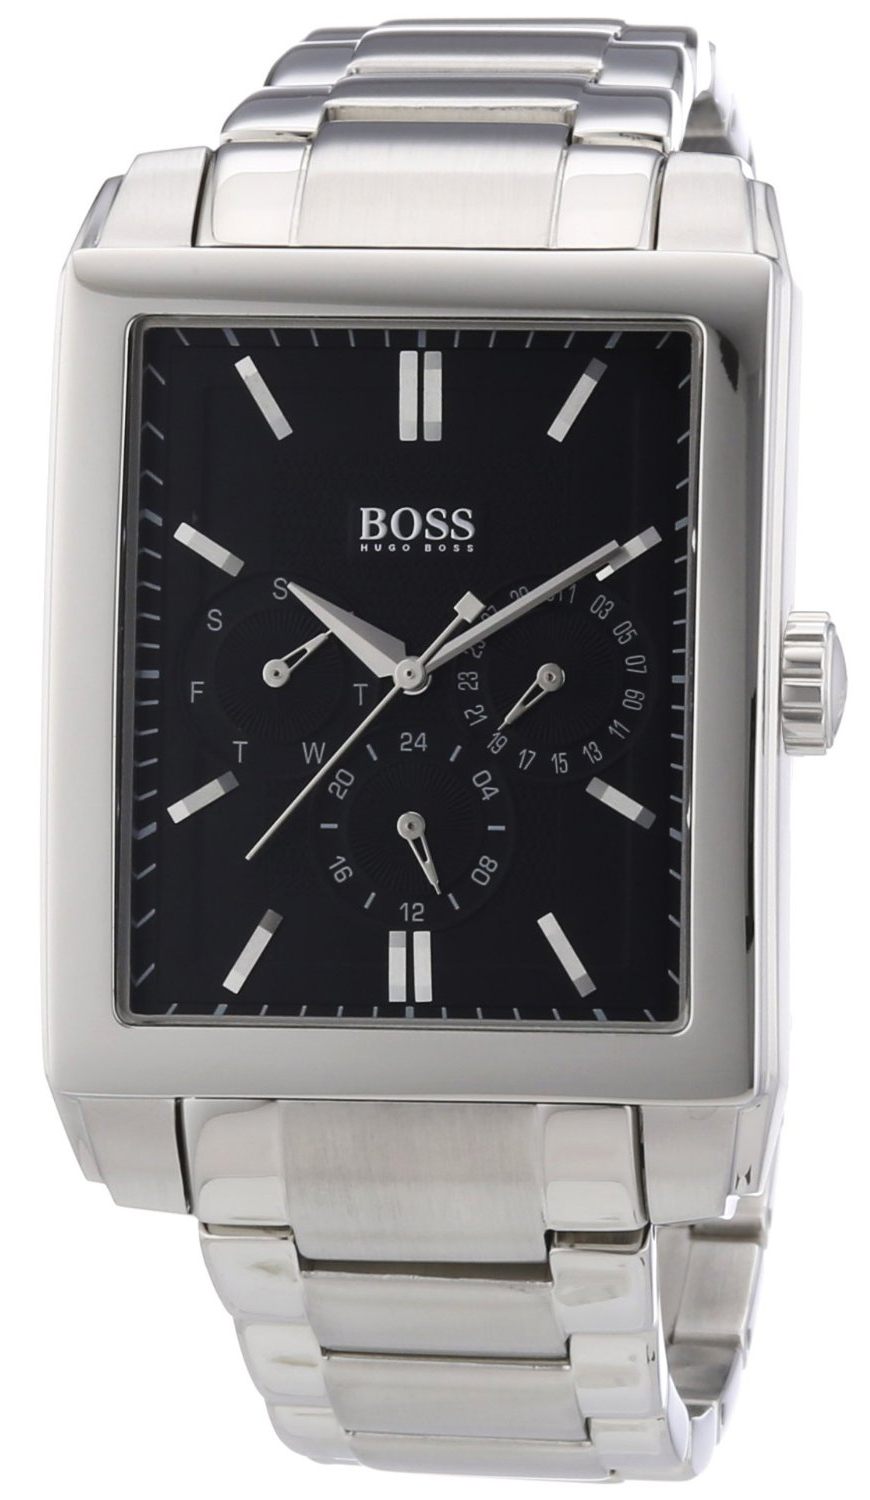 Hugo Boss 99999 Herrklocka 1512891 Svart/Stål 35x51 mm - Hugo Boss